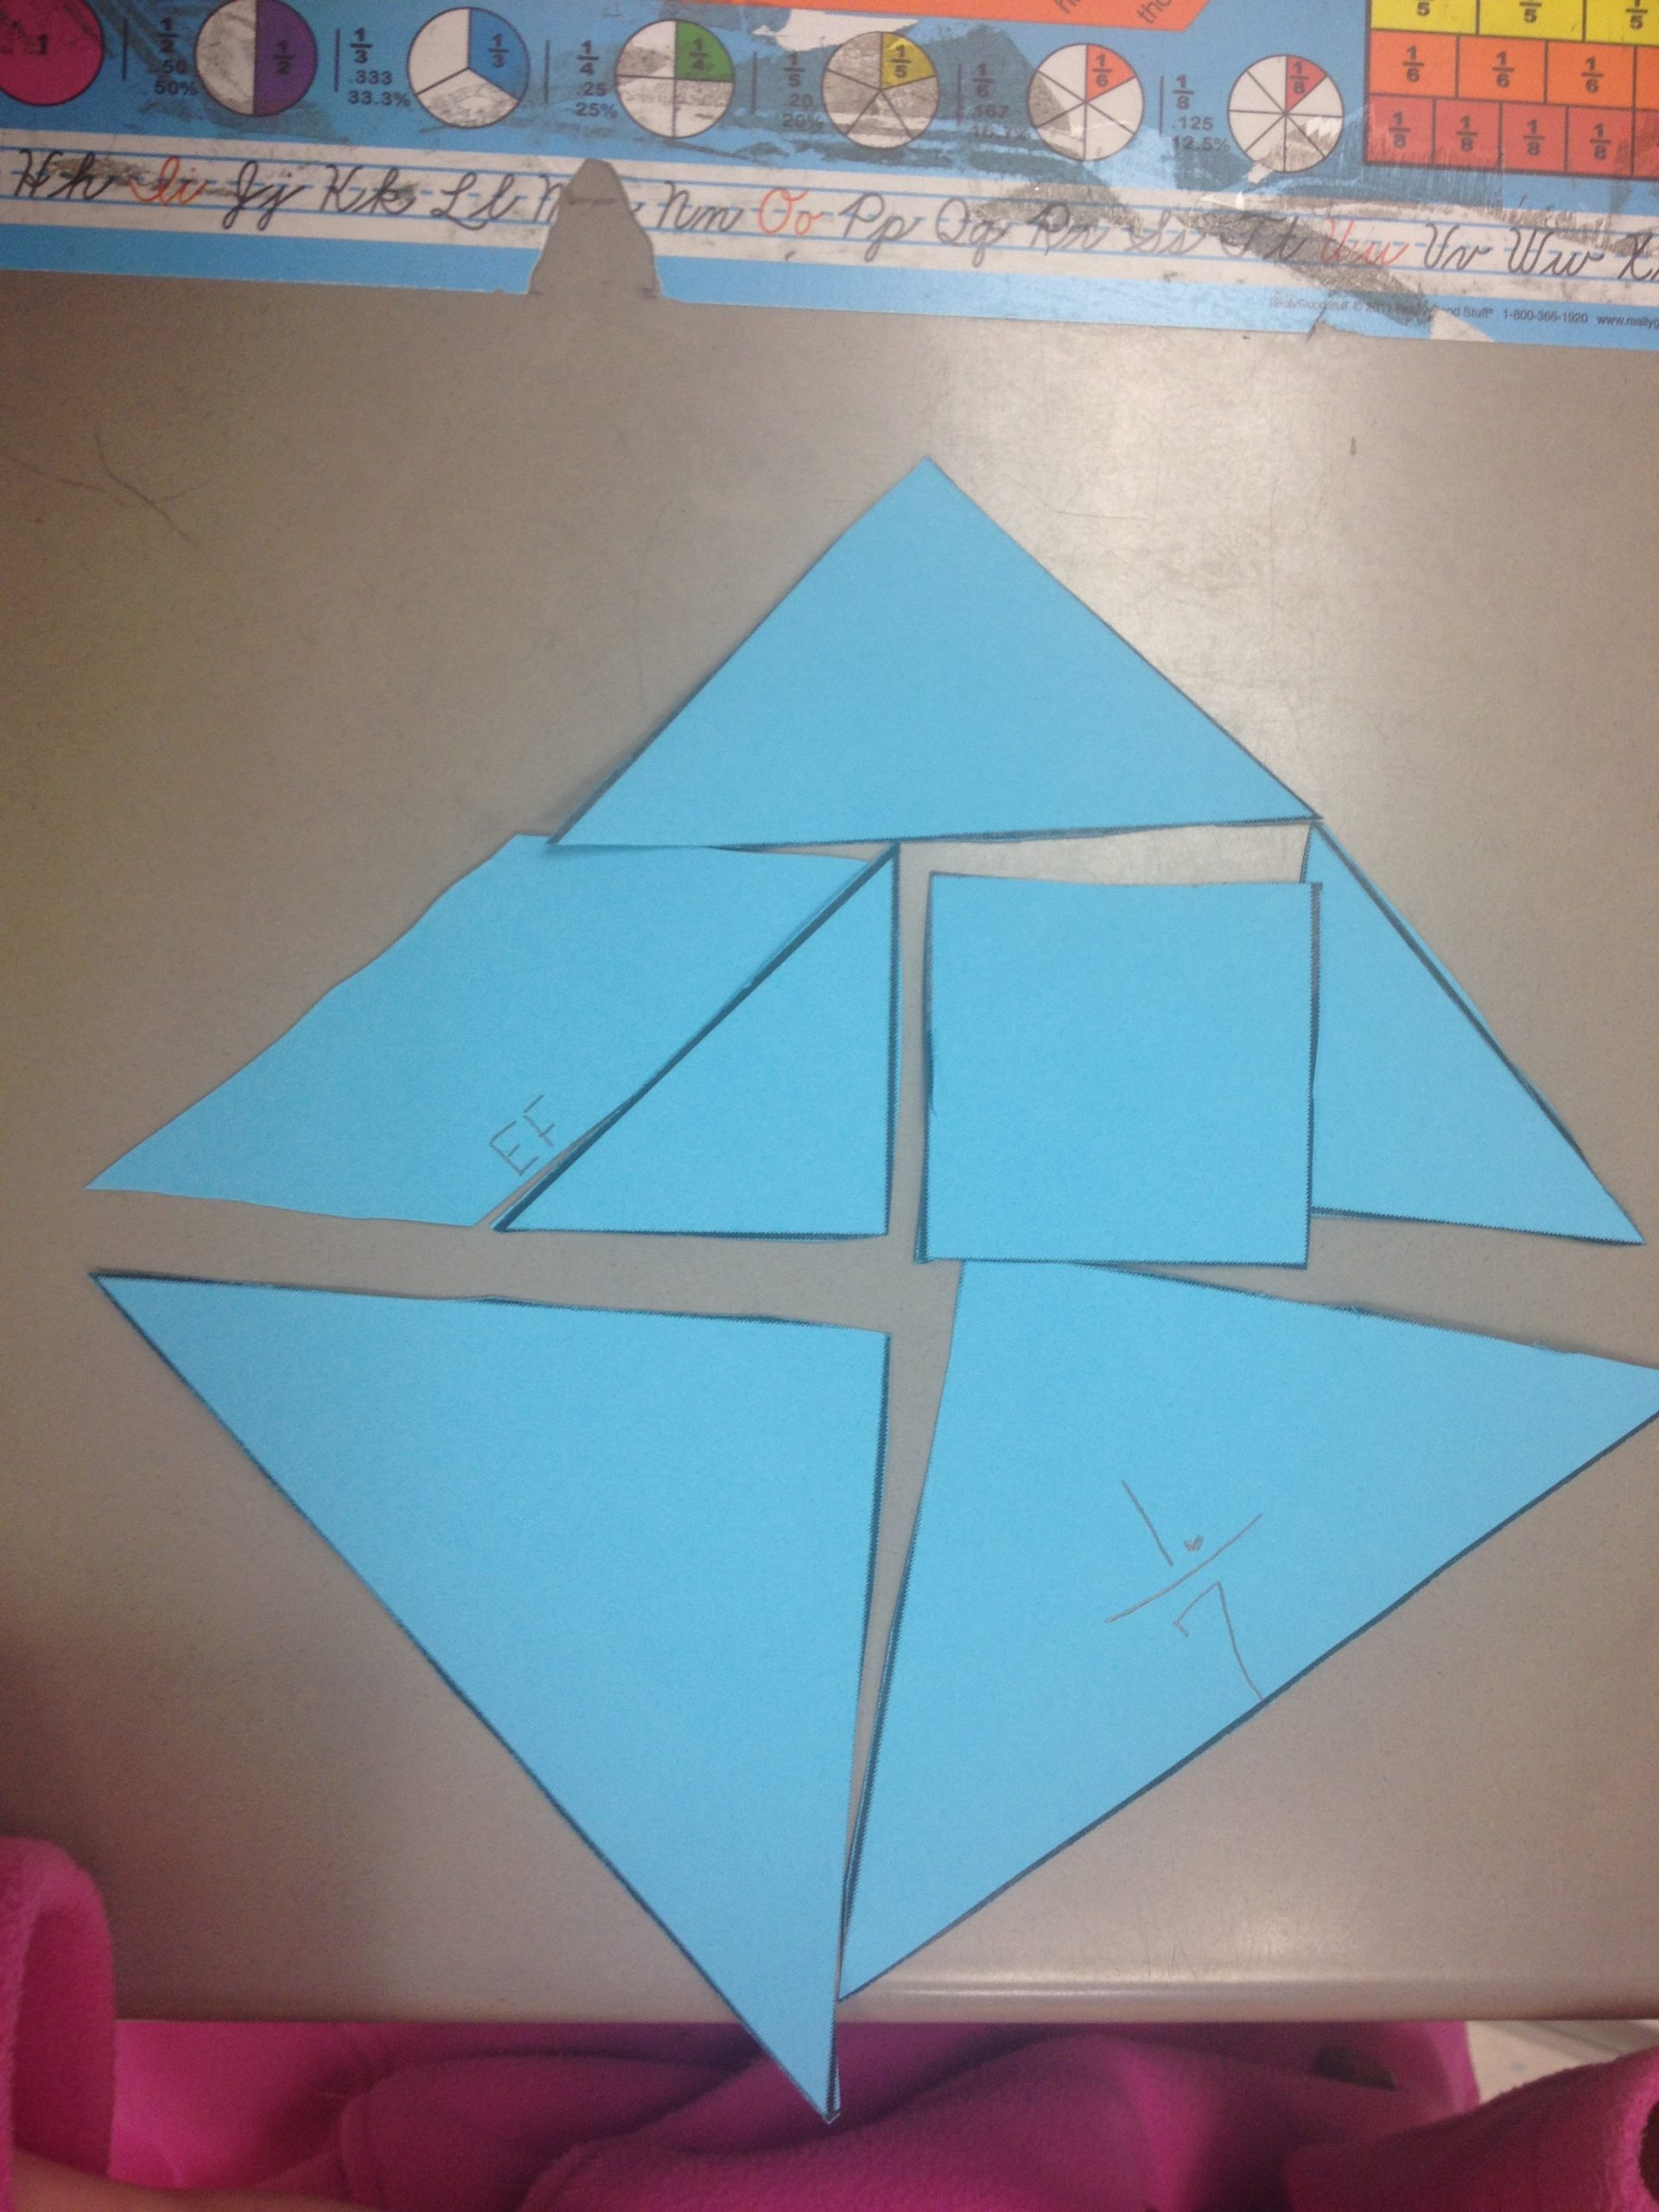 Difficult Tasks Allow Misconceptions To Shine | Questioning tout Progression Tangram